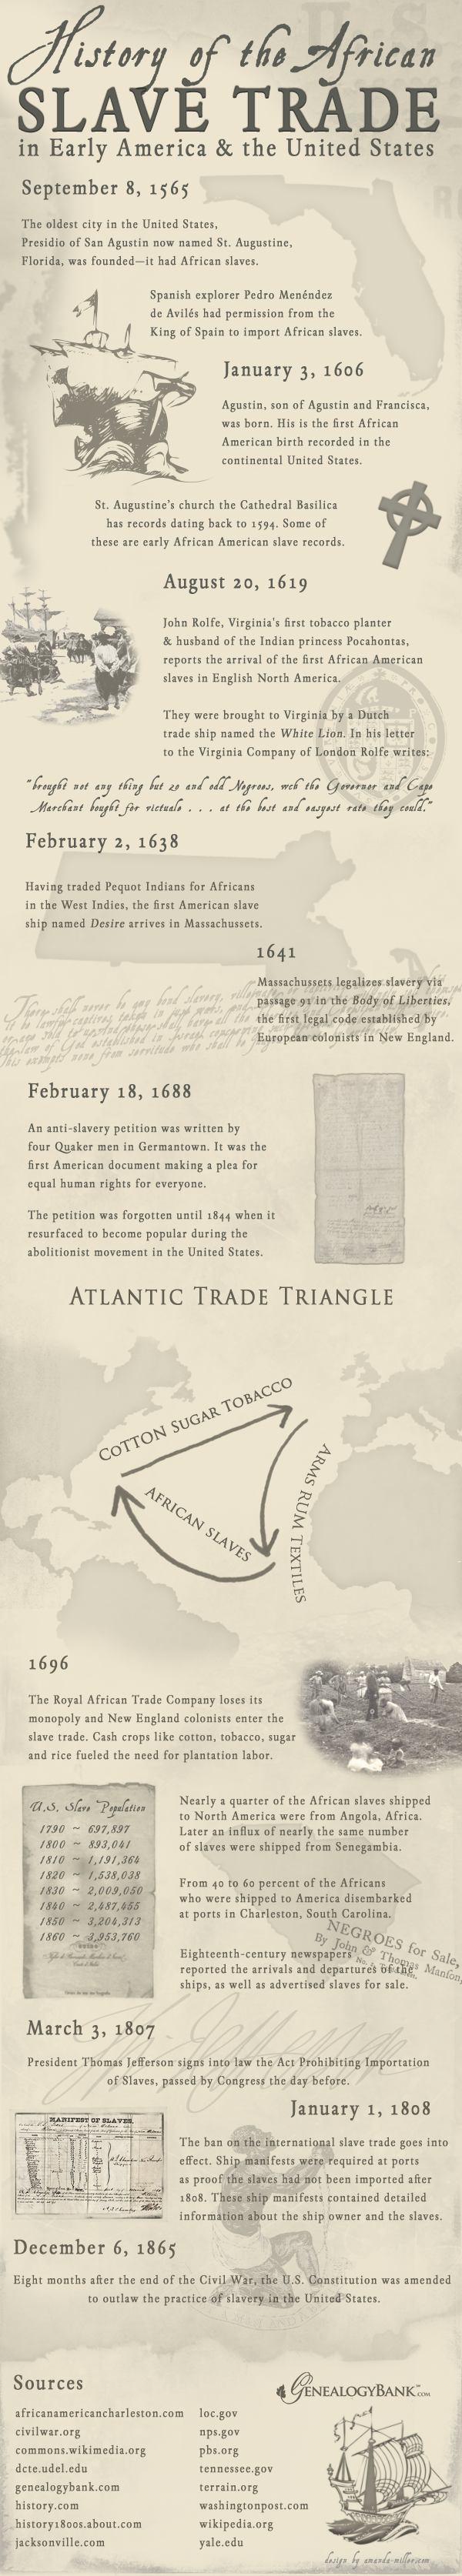 an infographic illustrating the african slave trade in american an infographic illustrating the african slave trade in american history more on the genealogybank